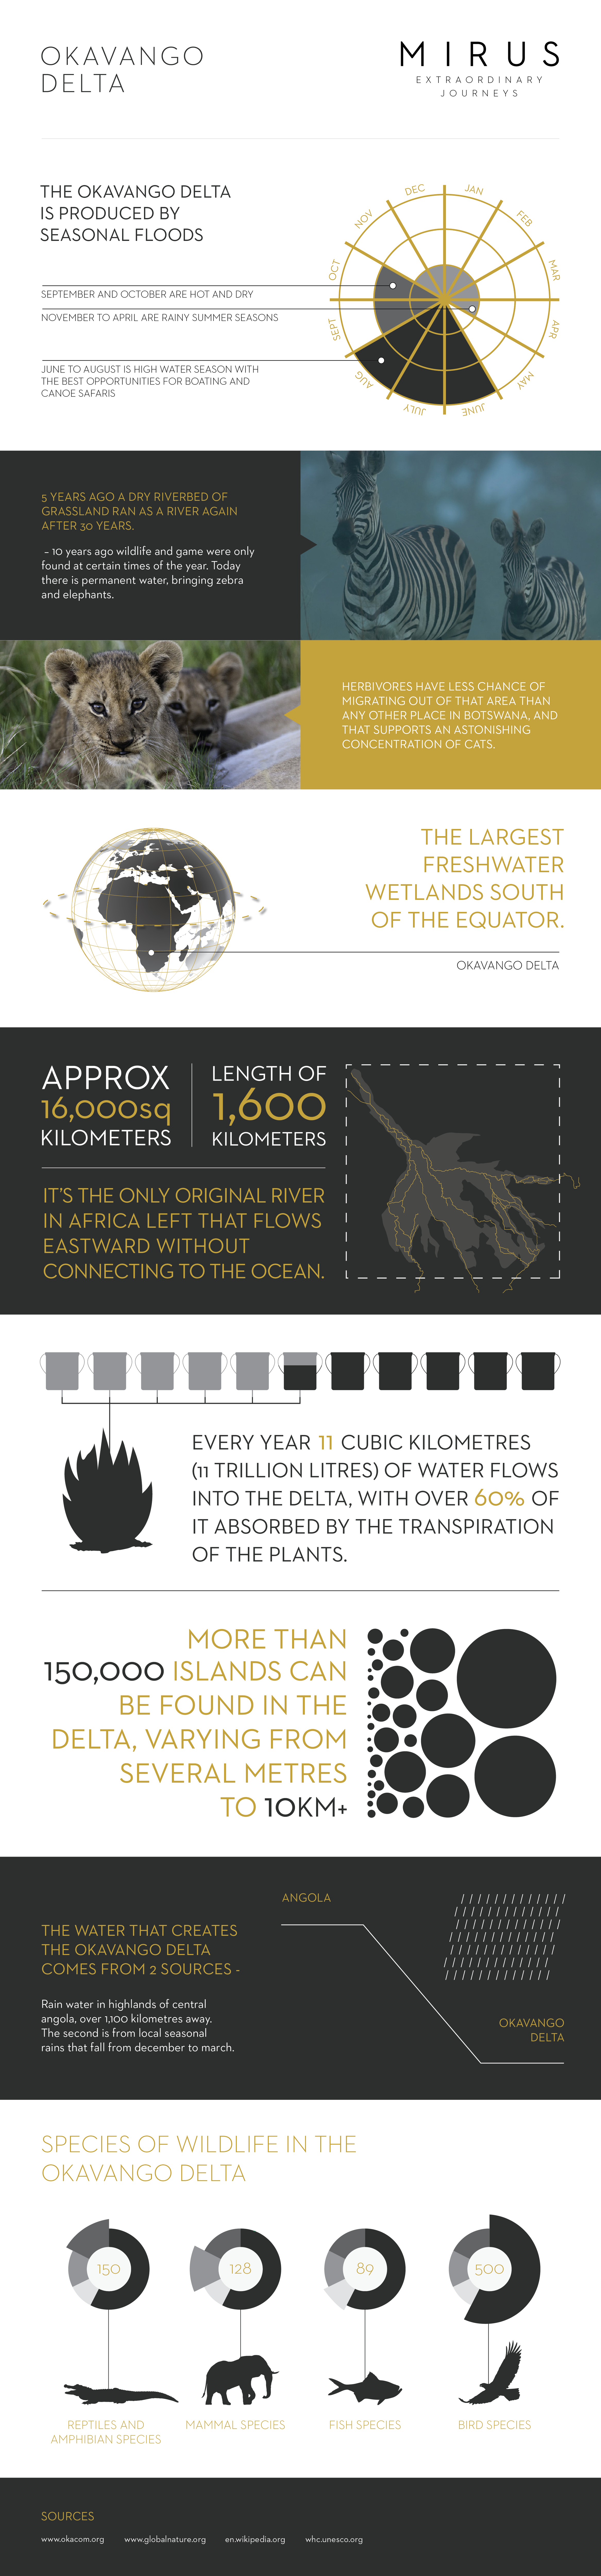 Okavango Delta infographic by Mirus Journeys